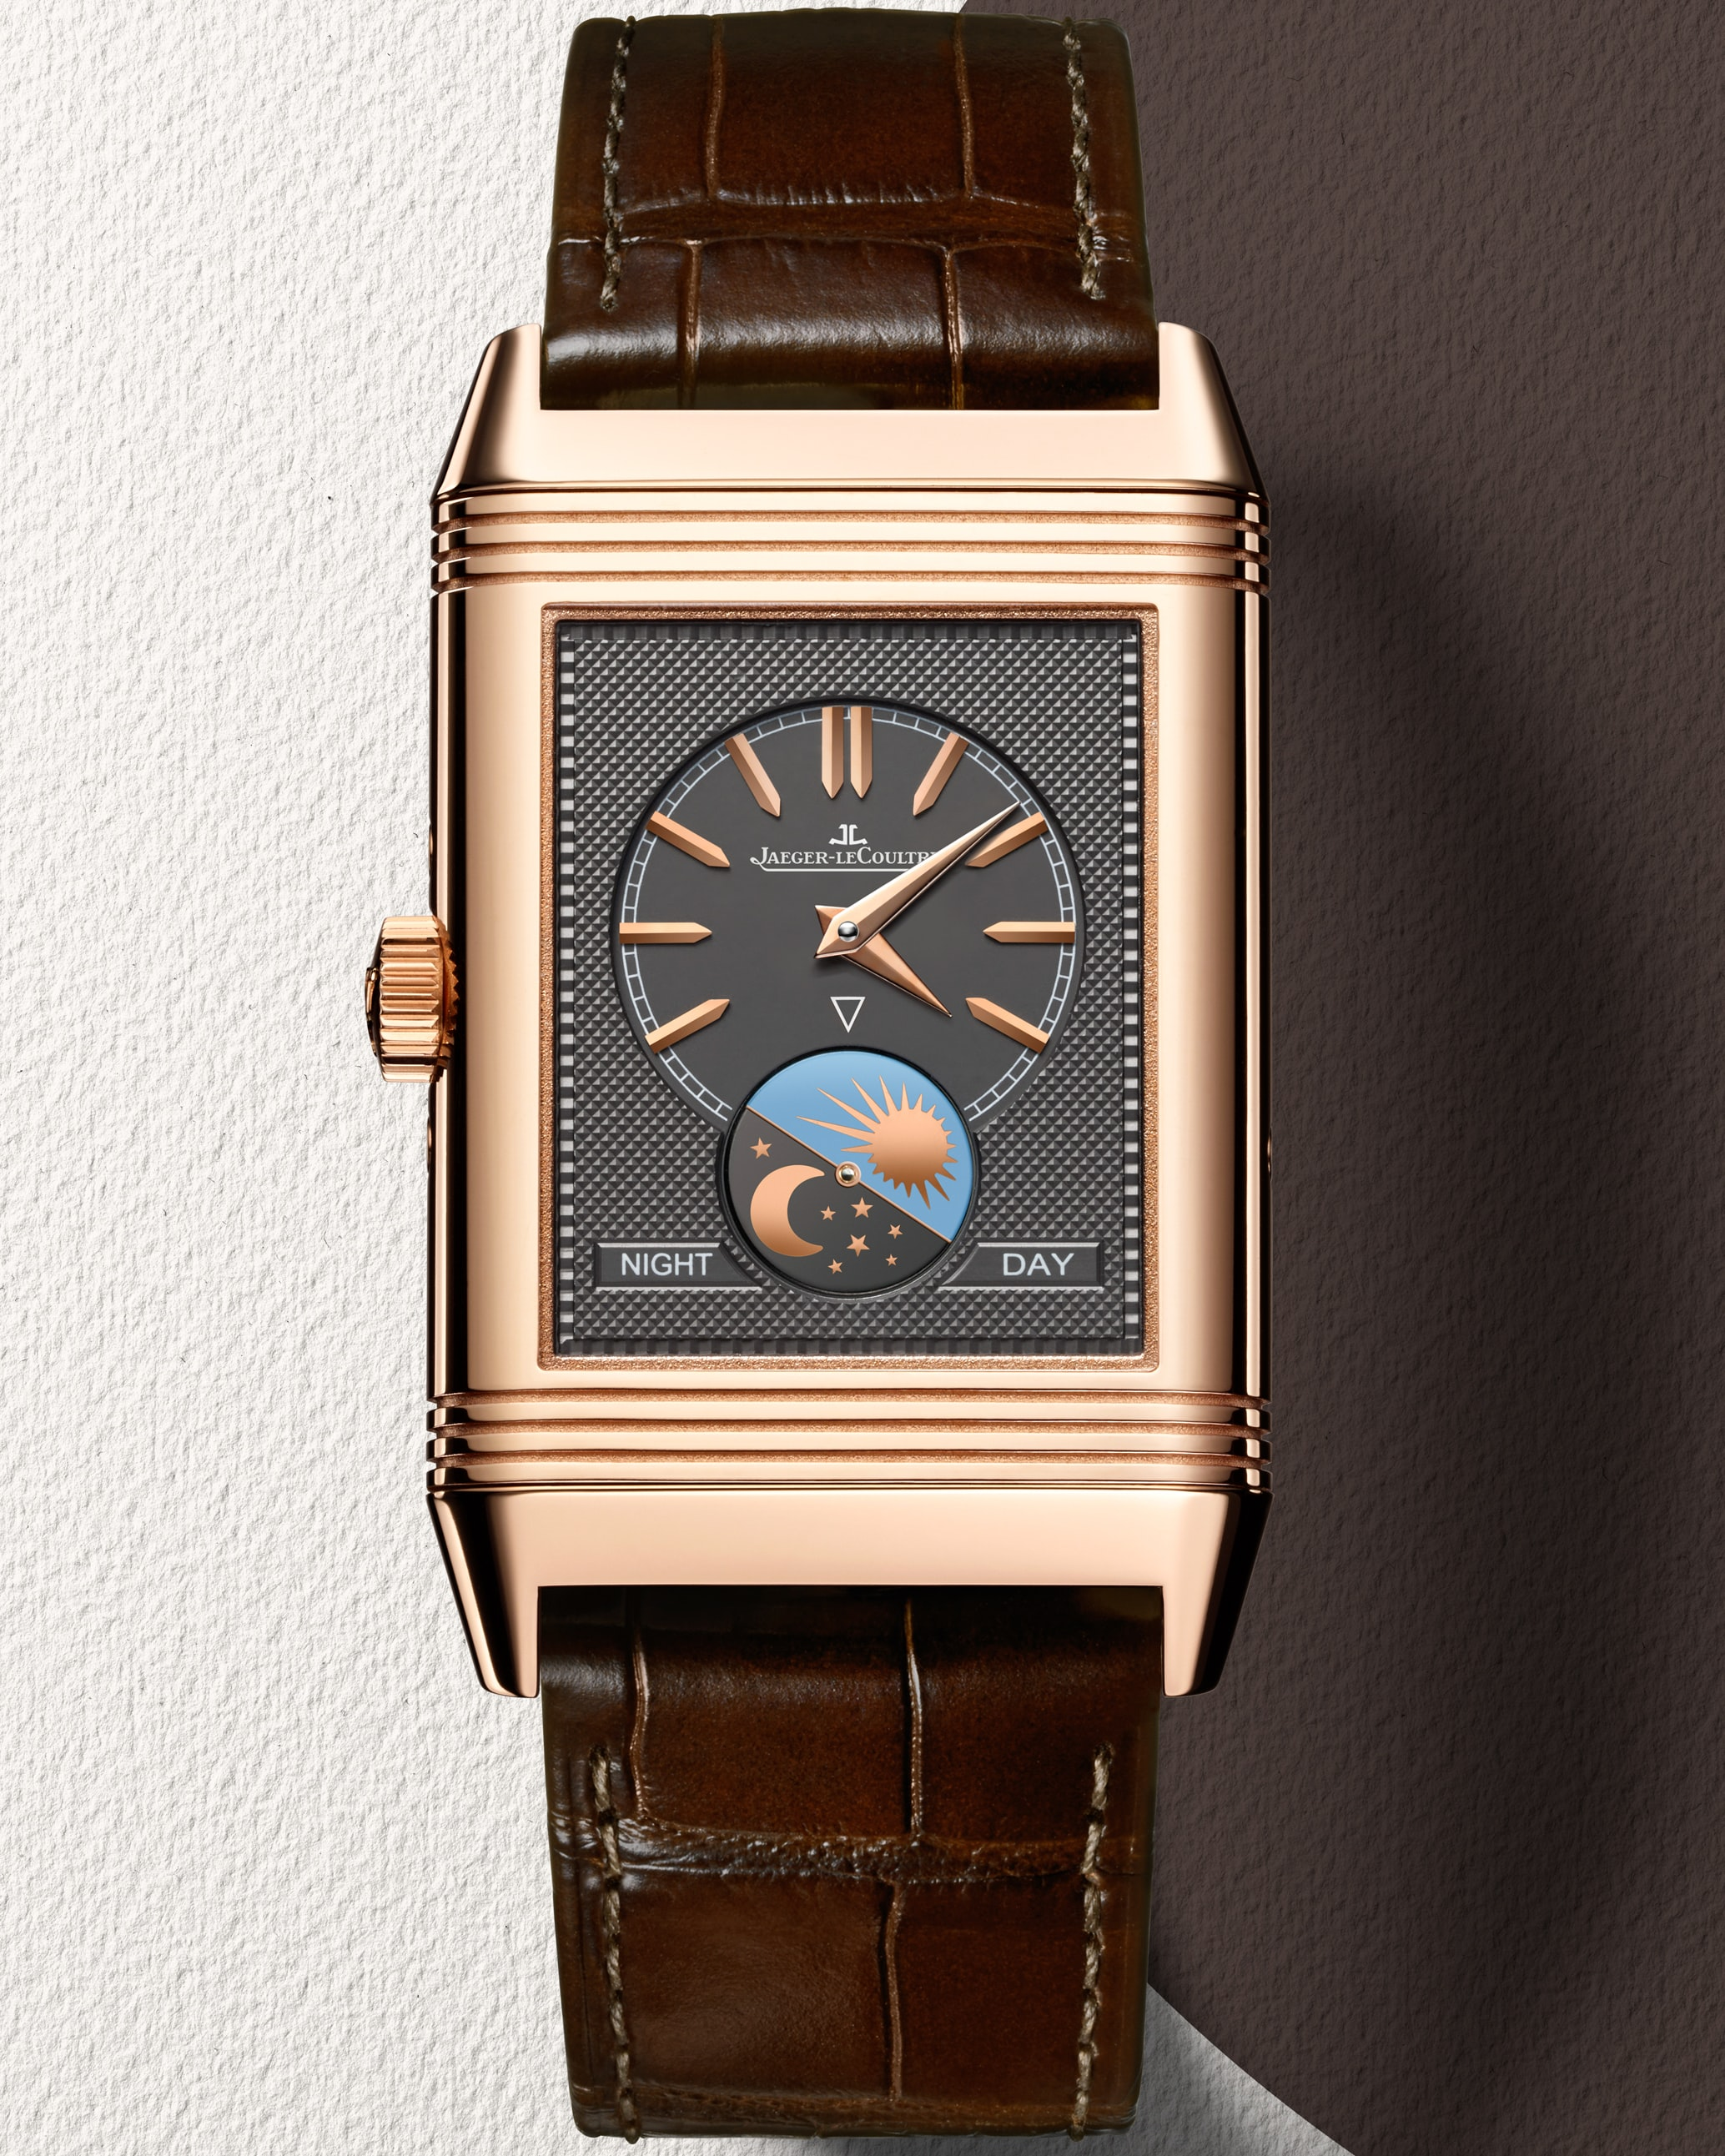 Announcing The Sixth Annual Madison Avenue Watch Week Announcing The Sixth Annual Madison Avenue Watch Week Jaeger LeCoultre Reverso Tribute Calendar back BG